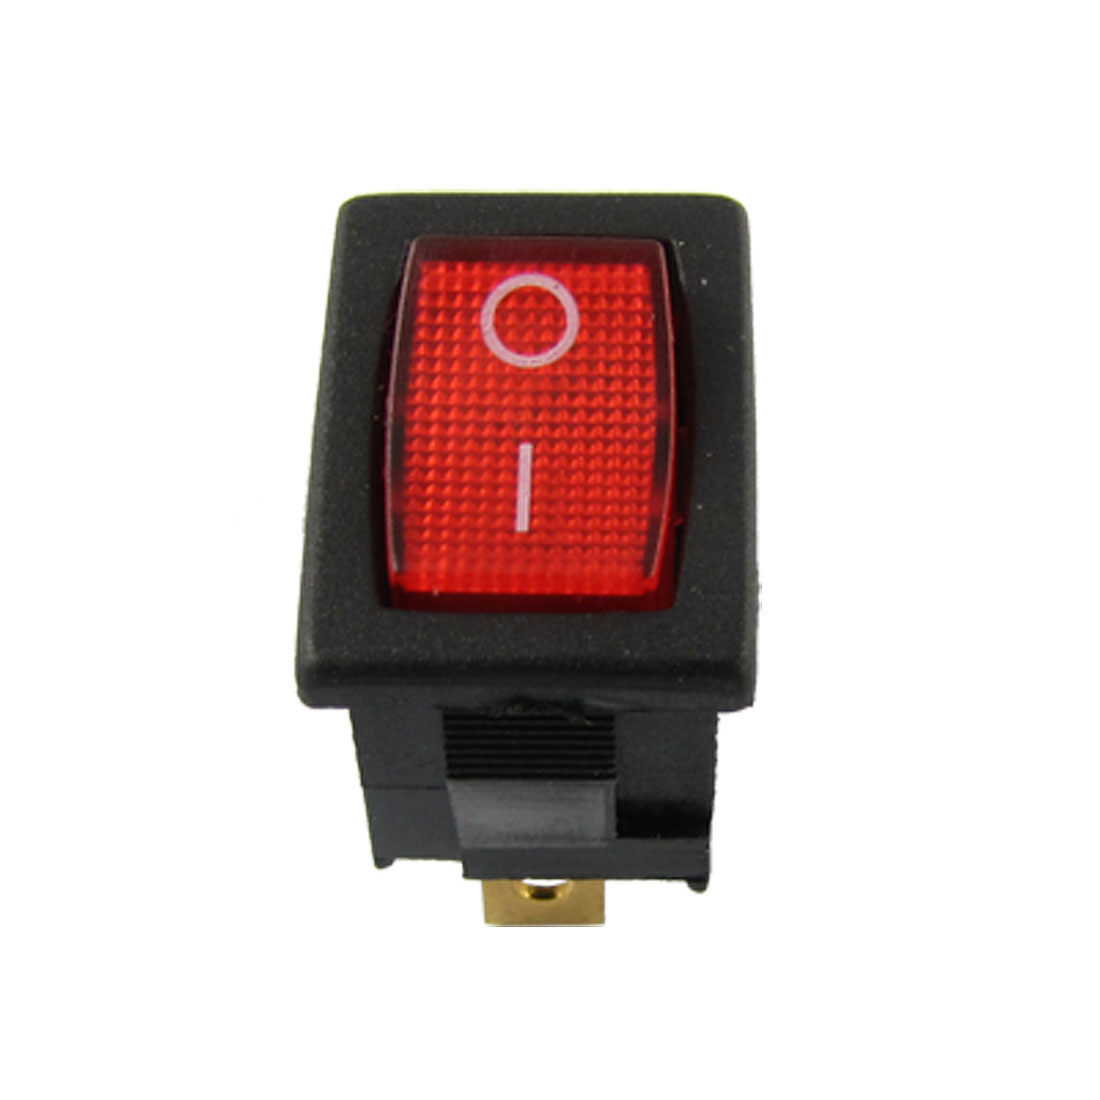 AC 6A/250V 10A/125V Red Light Illuminated ON-OFF SPST Snap in Boat Rocker Switch